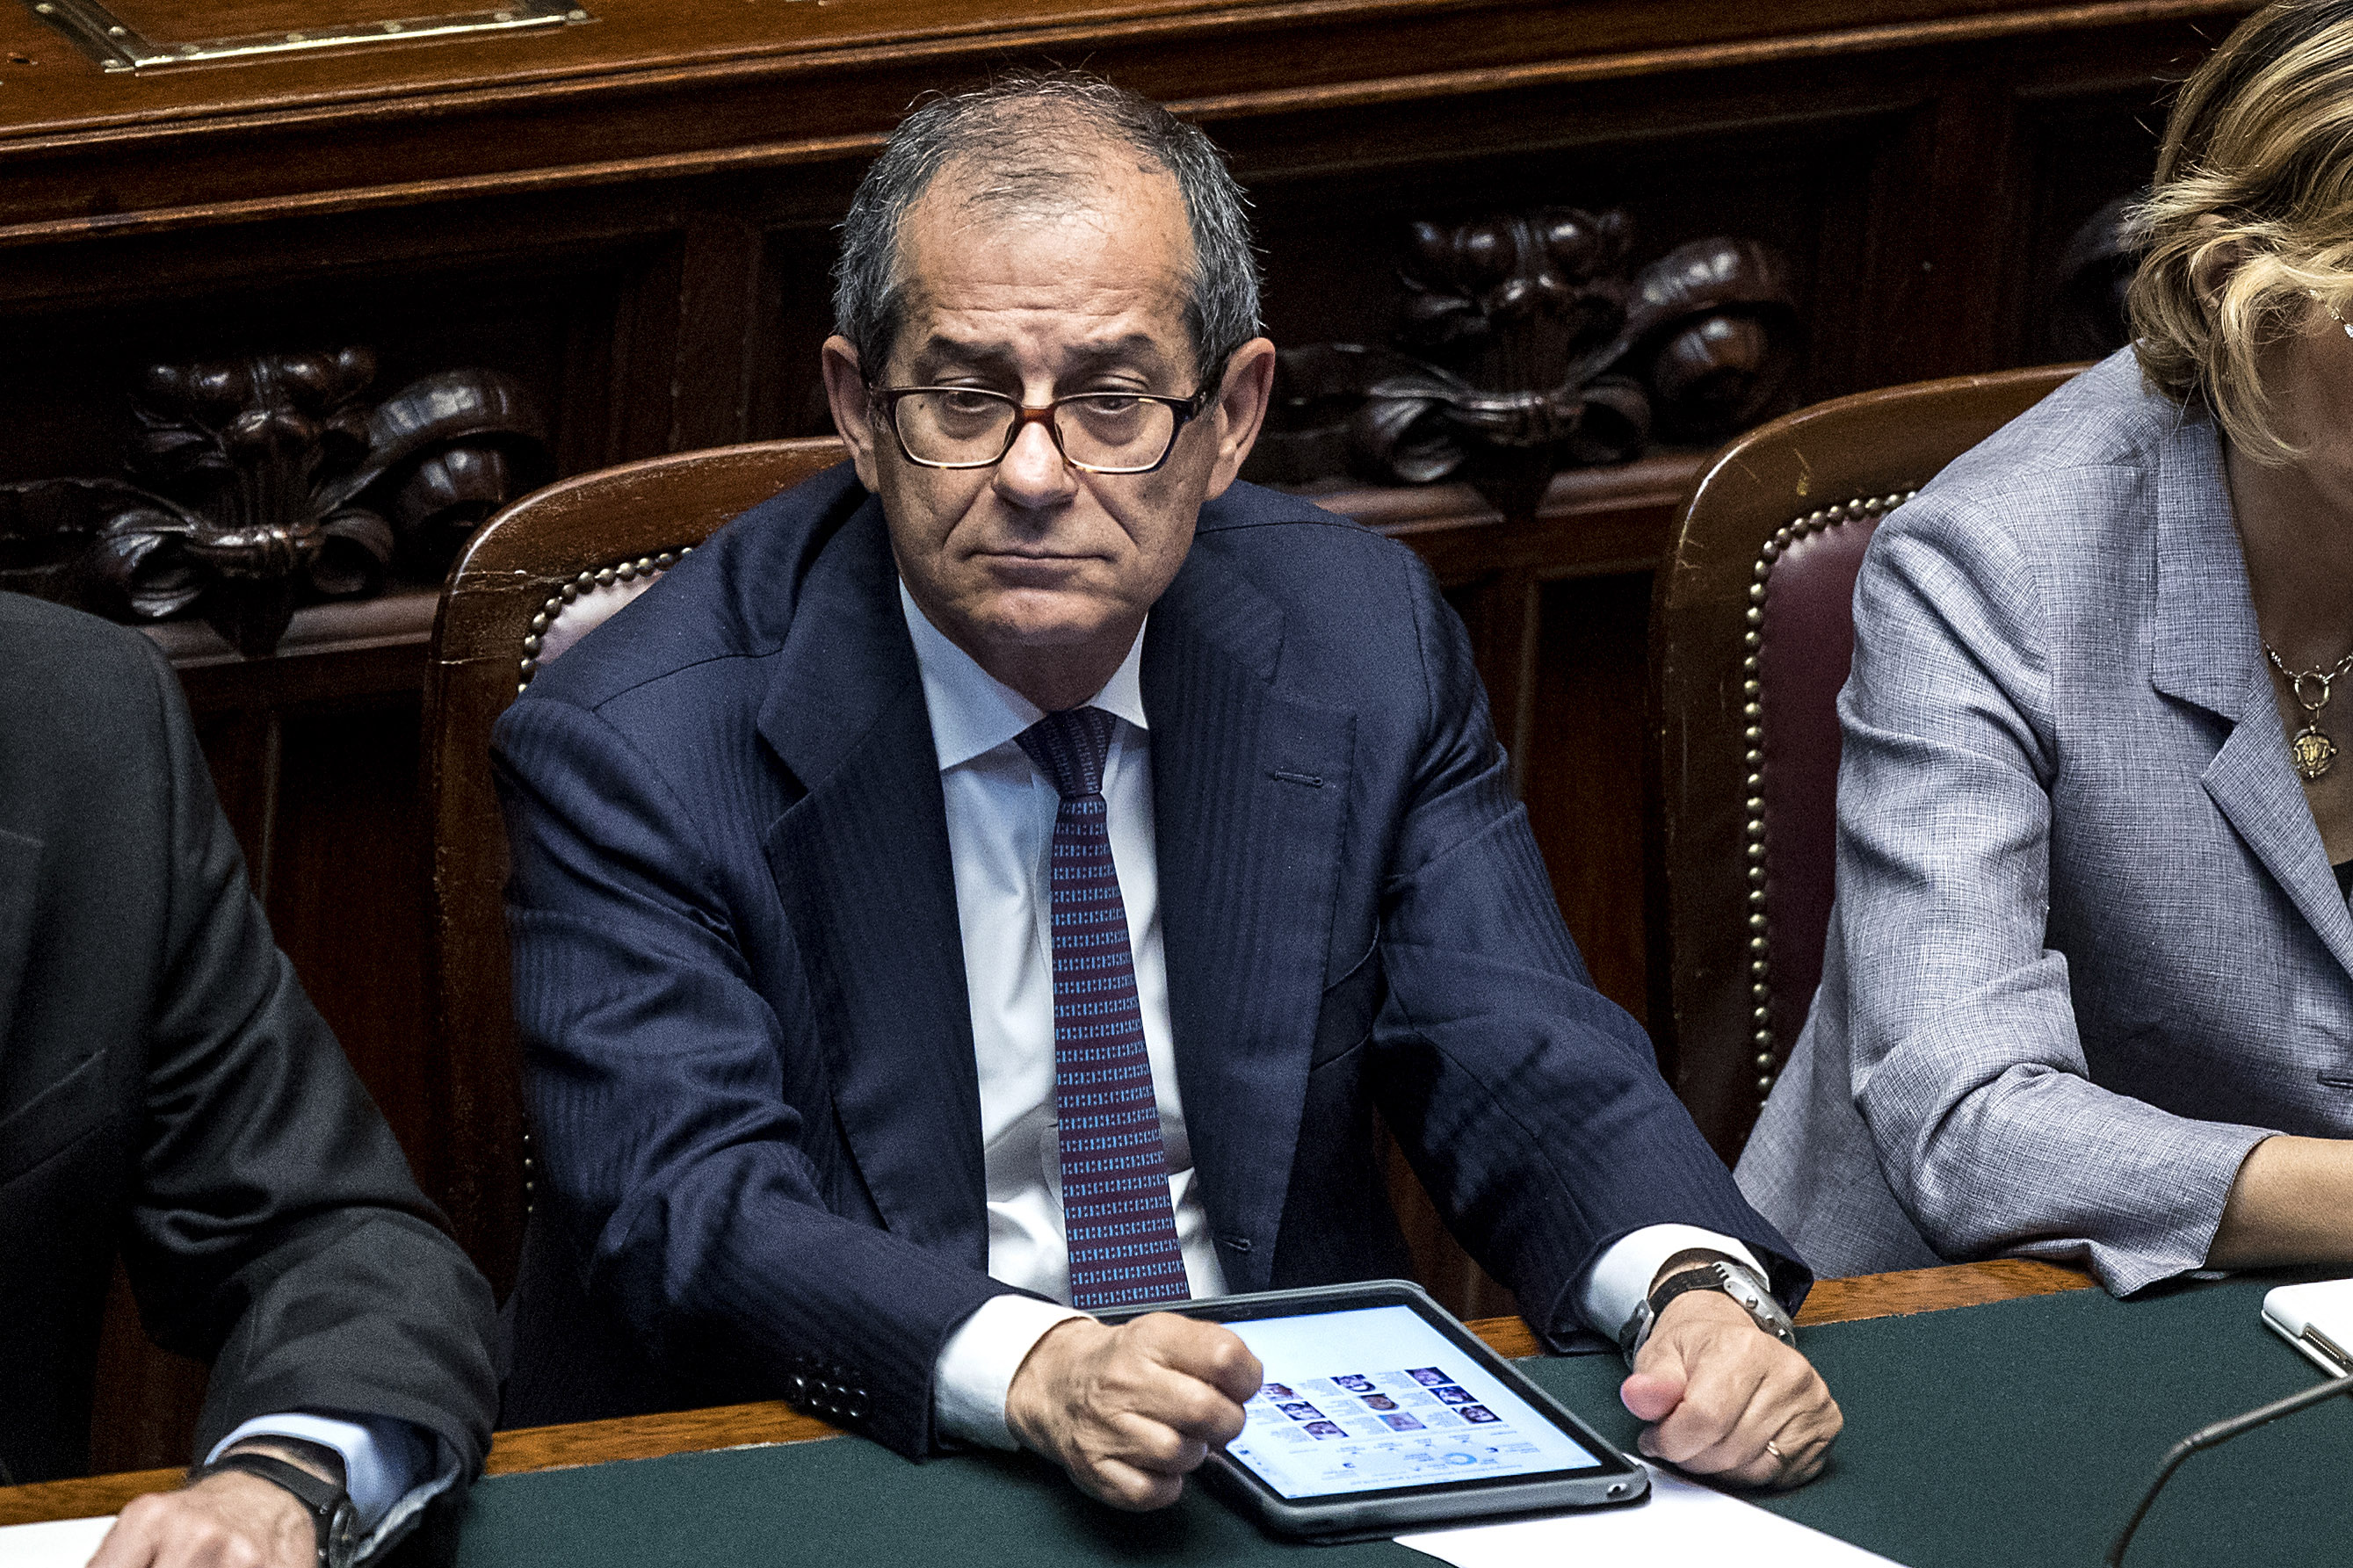 ITALY: Budget update